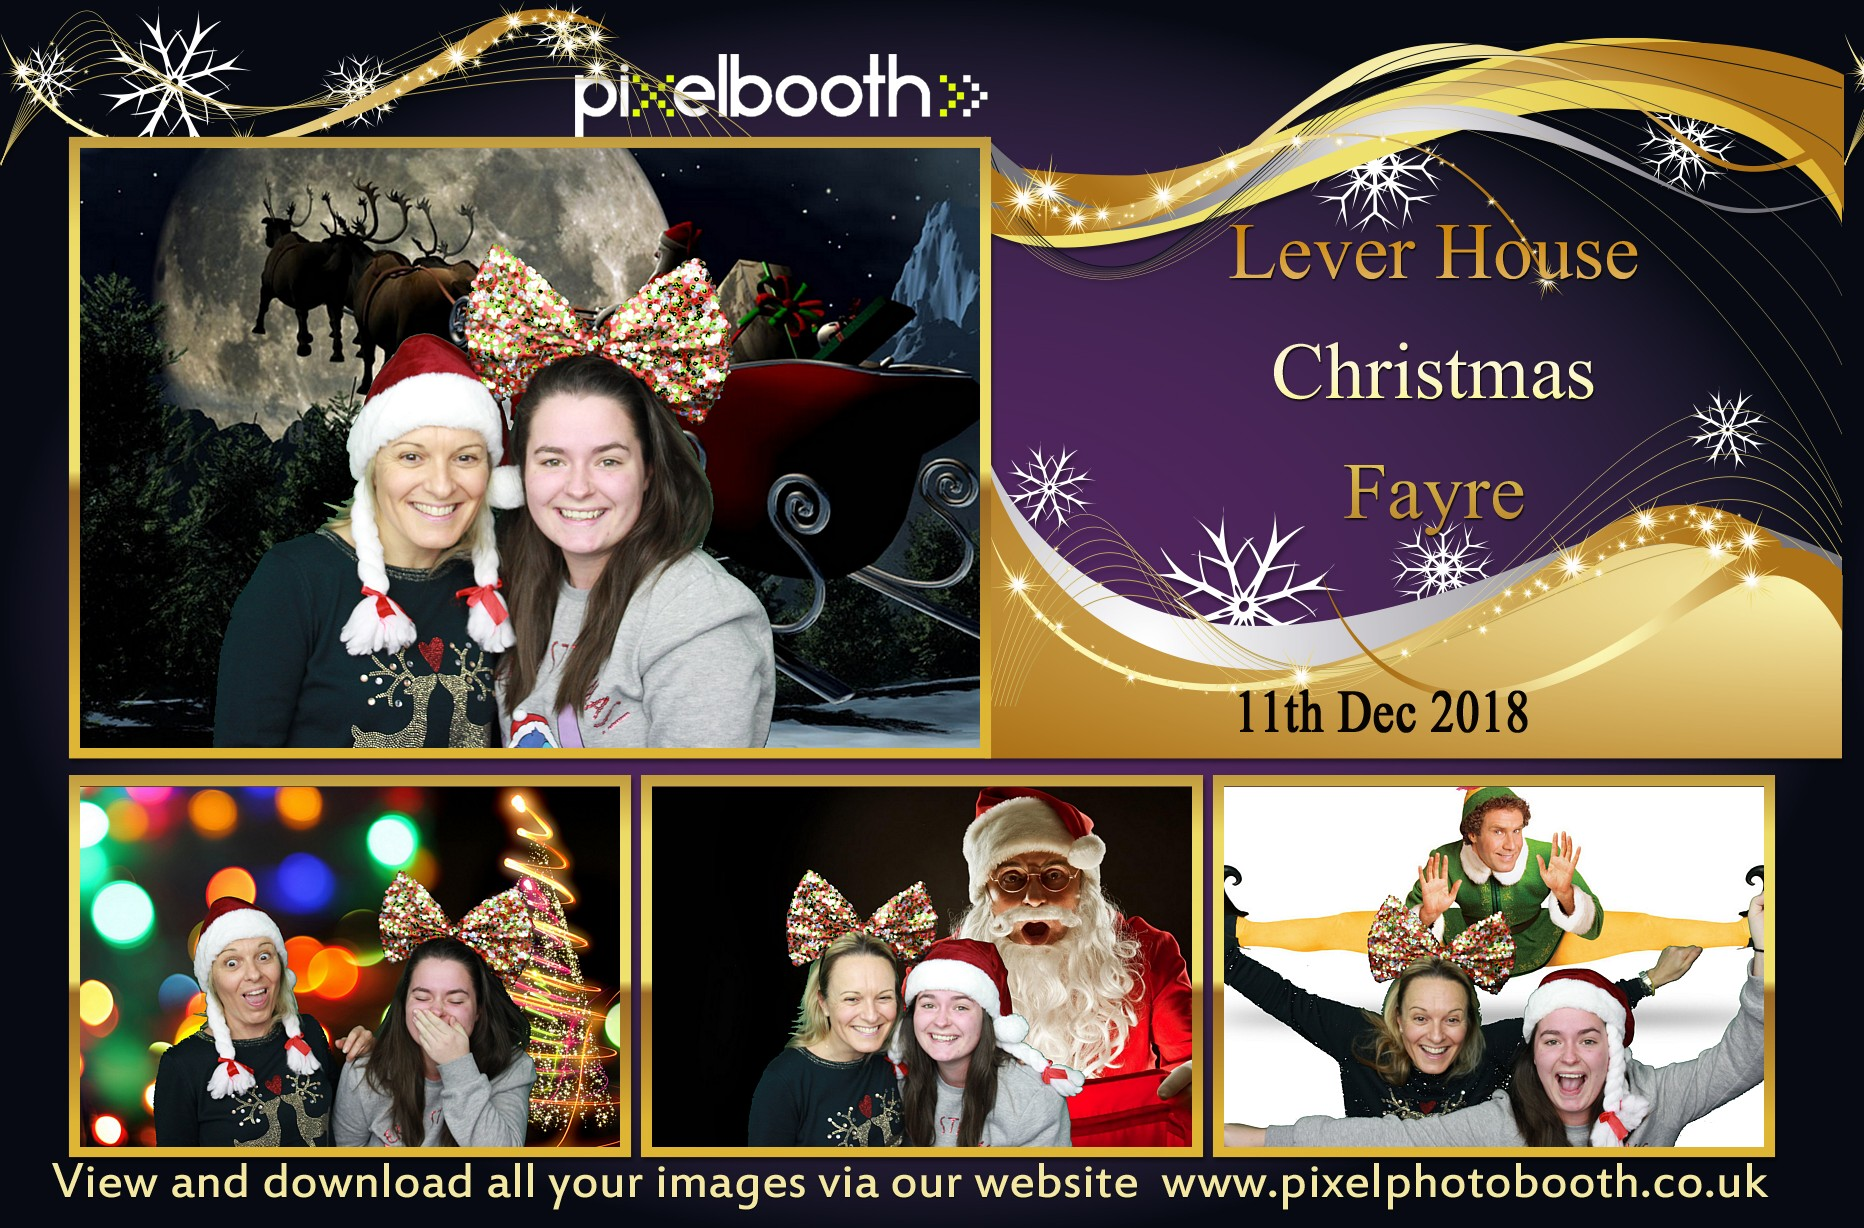 11th Dec 2018: Lever House Christmas Fayre